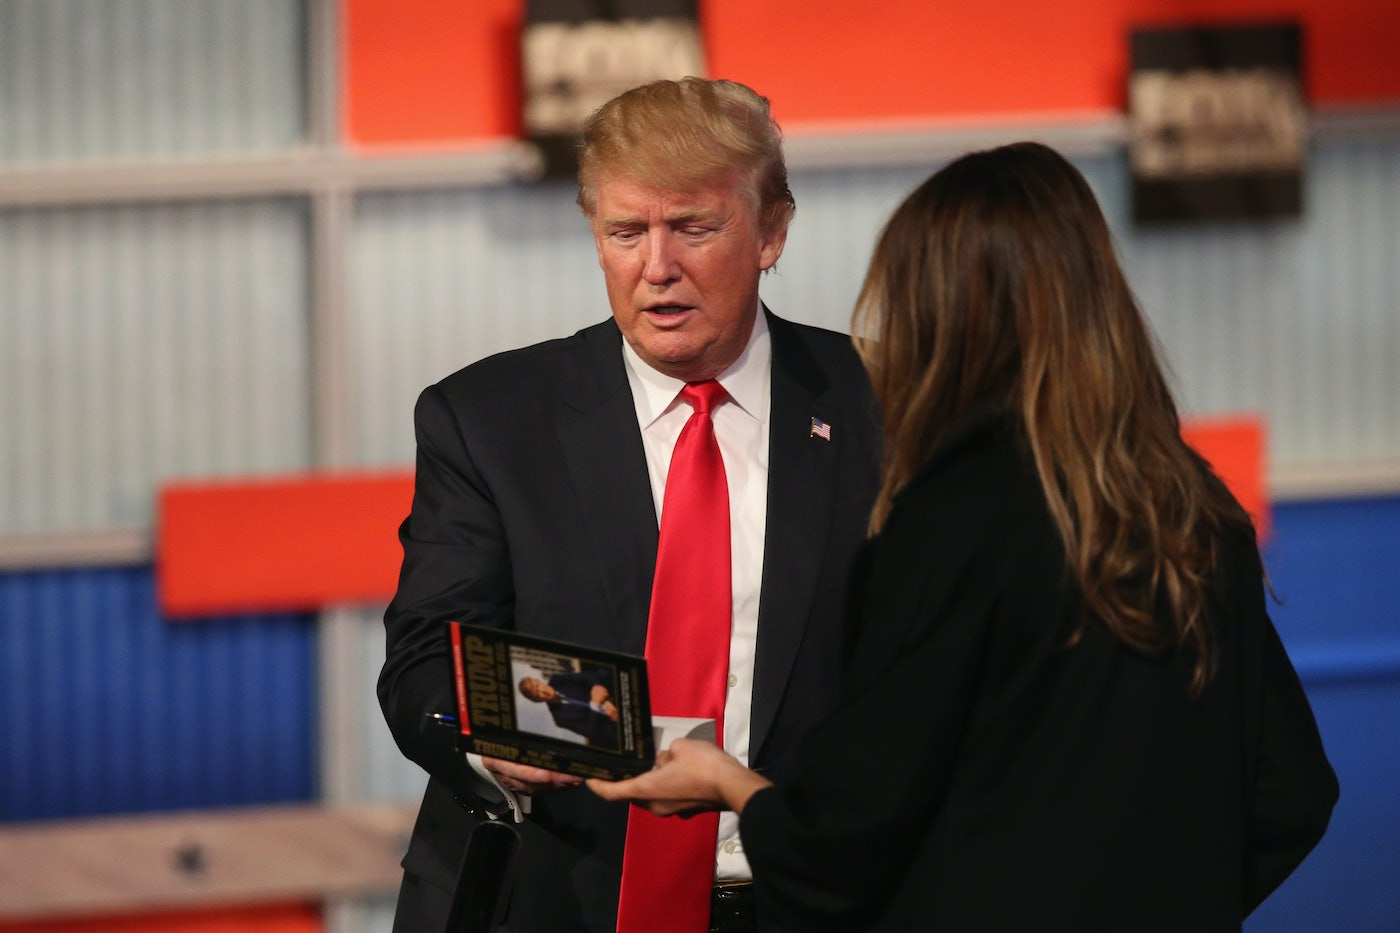 Trump holds a book